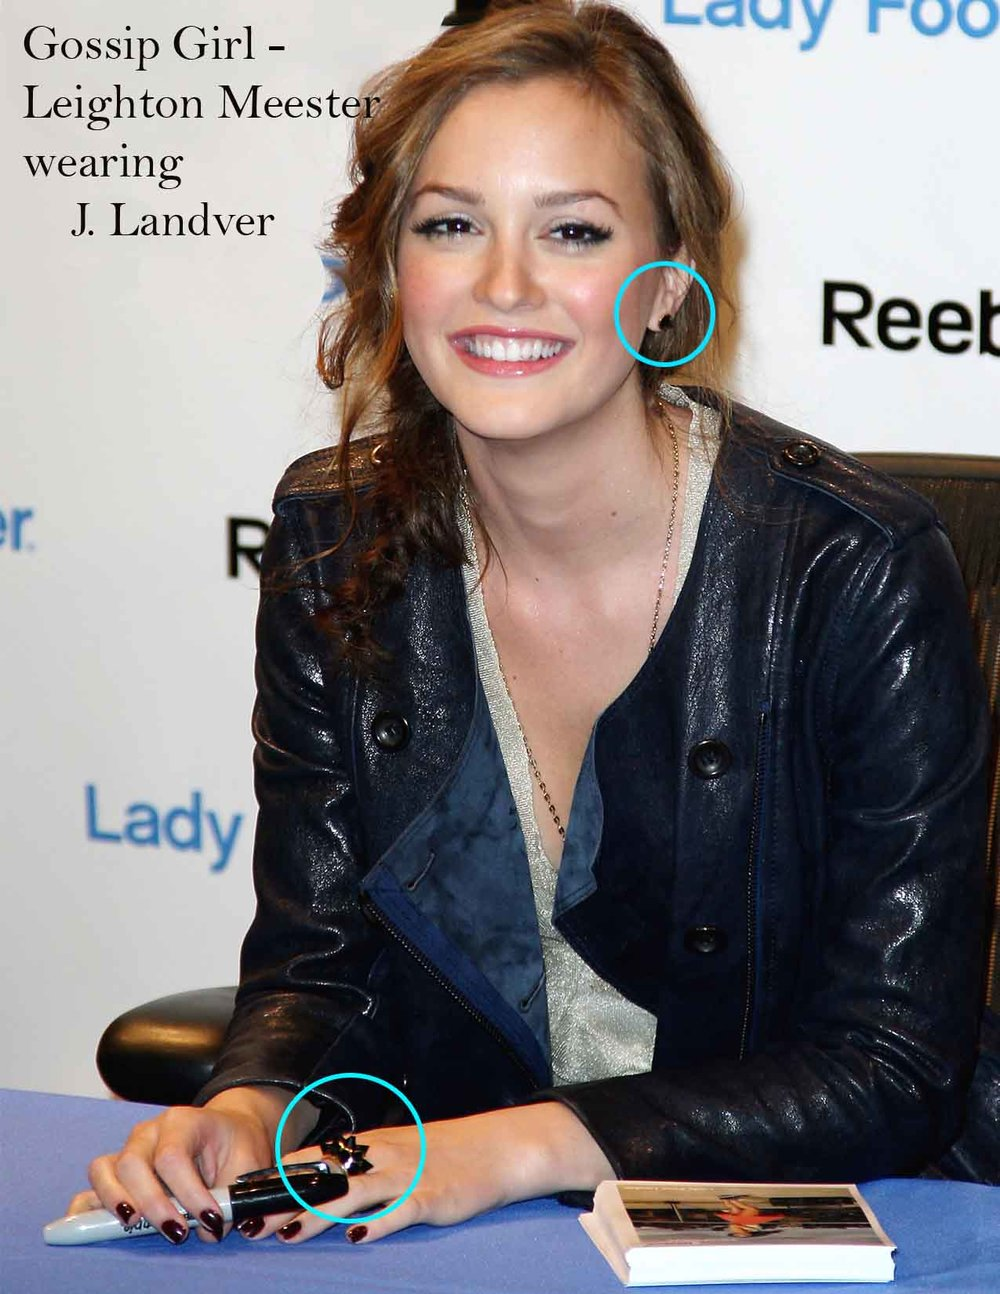 celebrities alicia brockwell ld leightonmeester 0309lores jpg